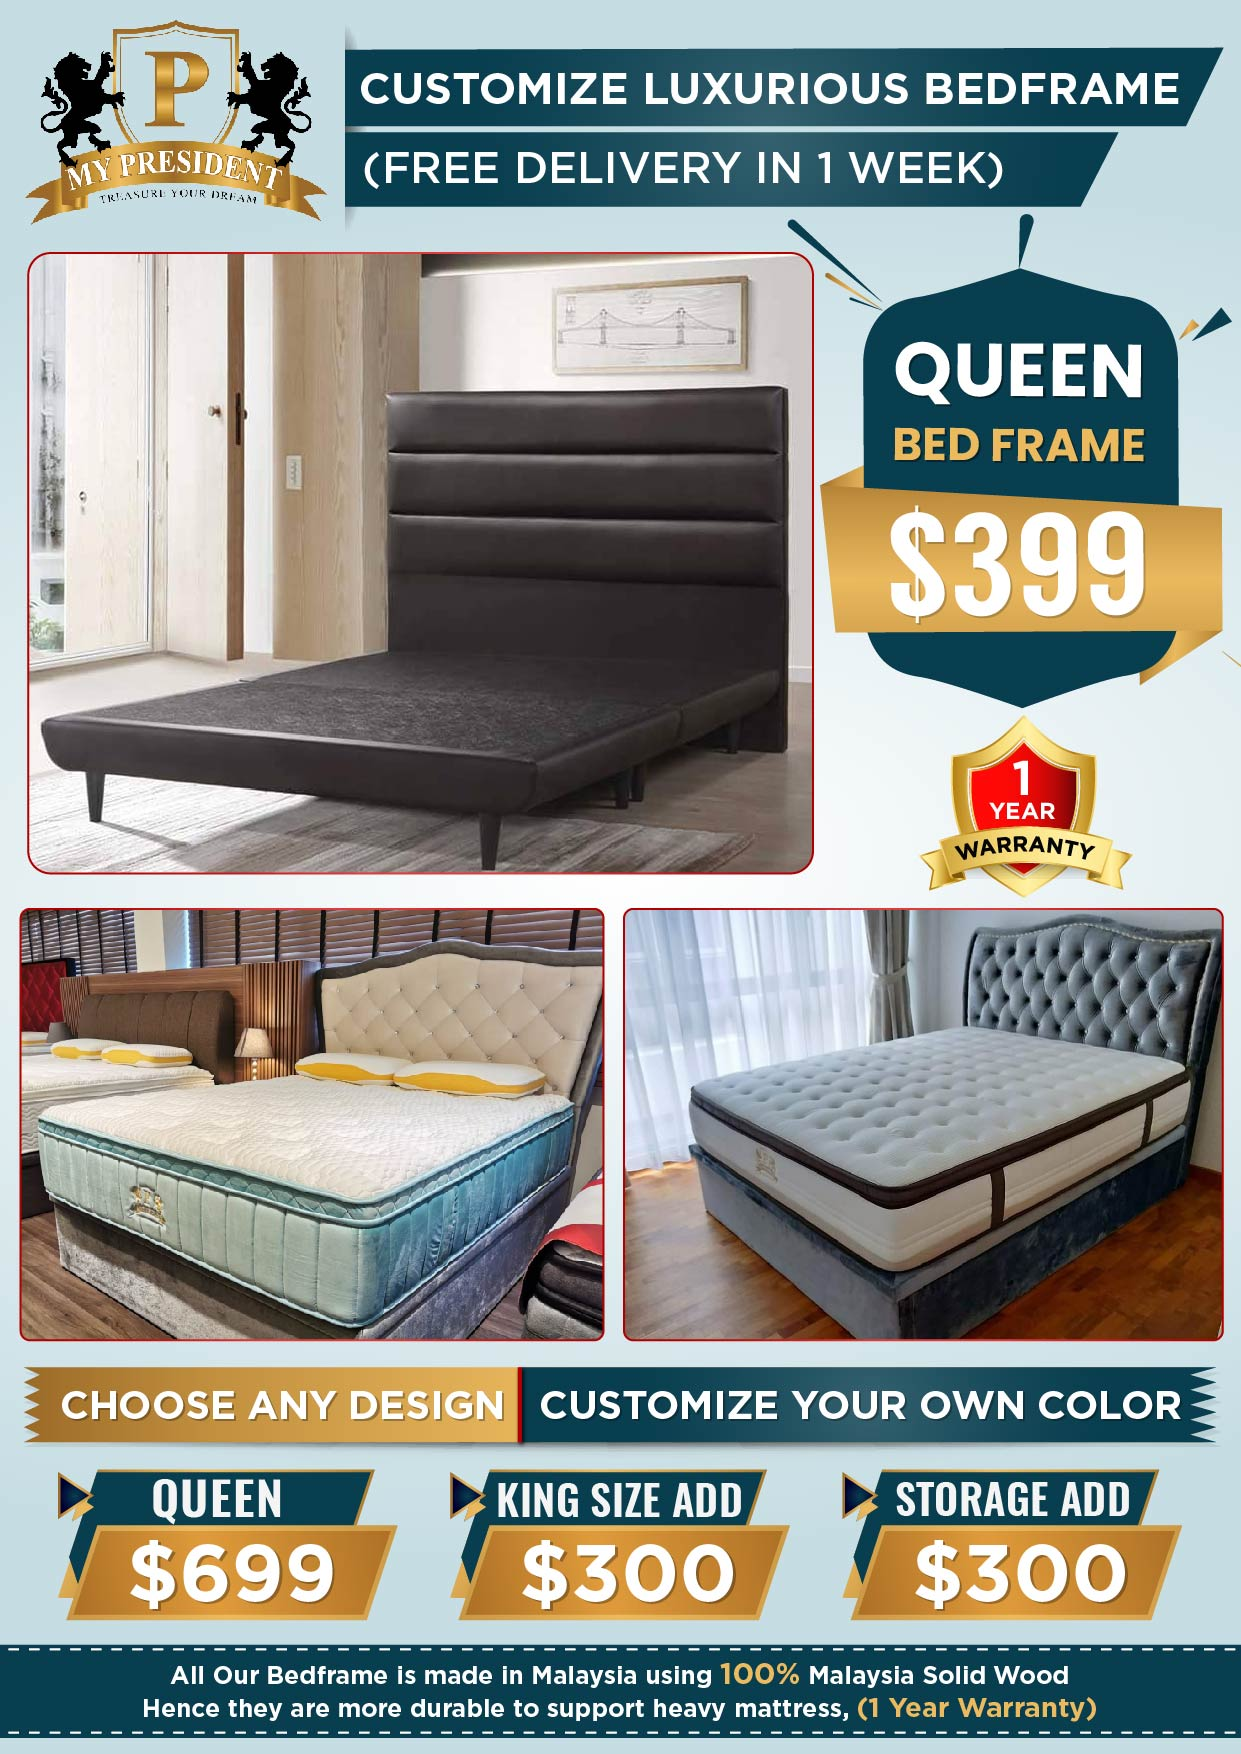 Customized-Luxurious-Bedframe-with-Free-dlievery